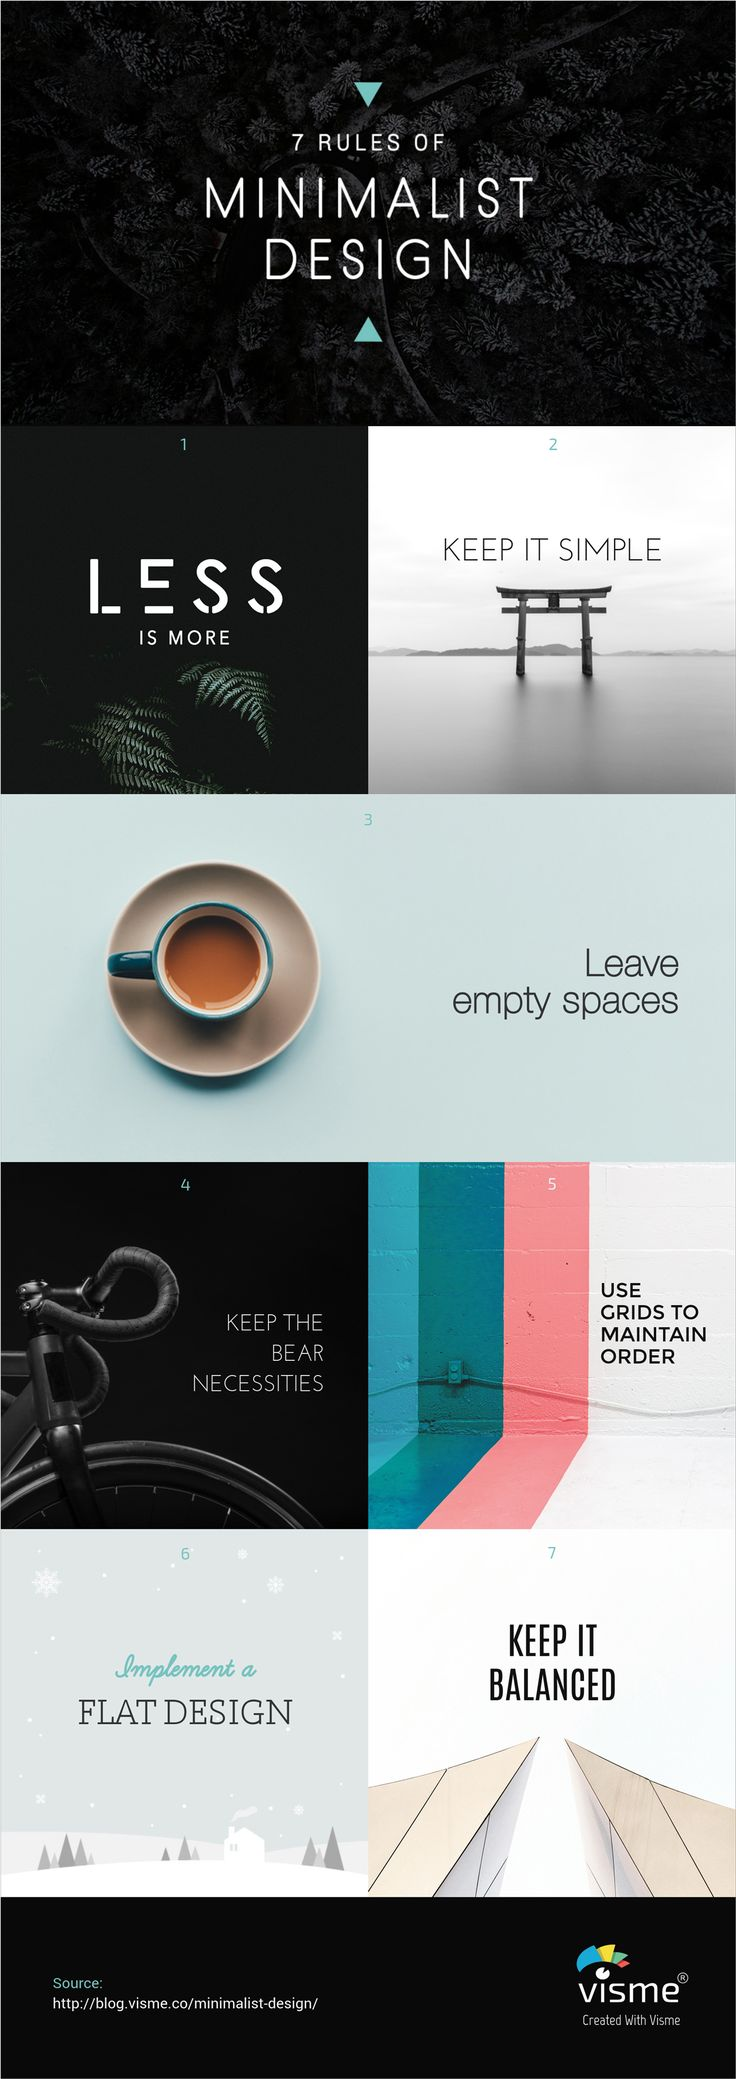 optimal resume login%0A The Key Rules of Minimalist Graphic Design